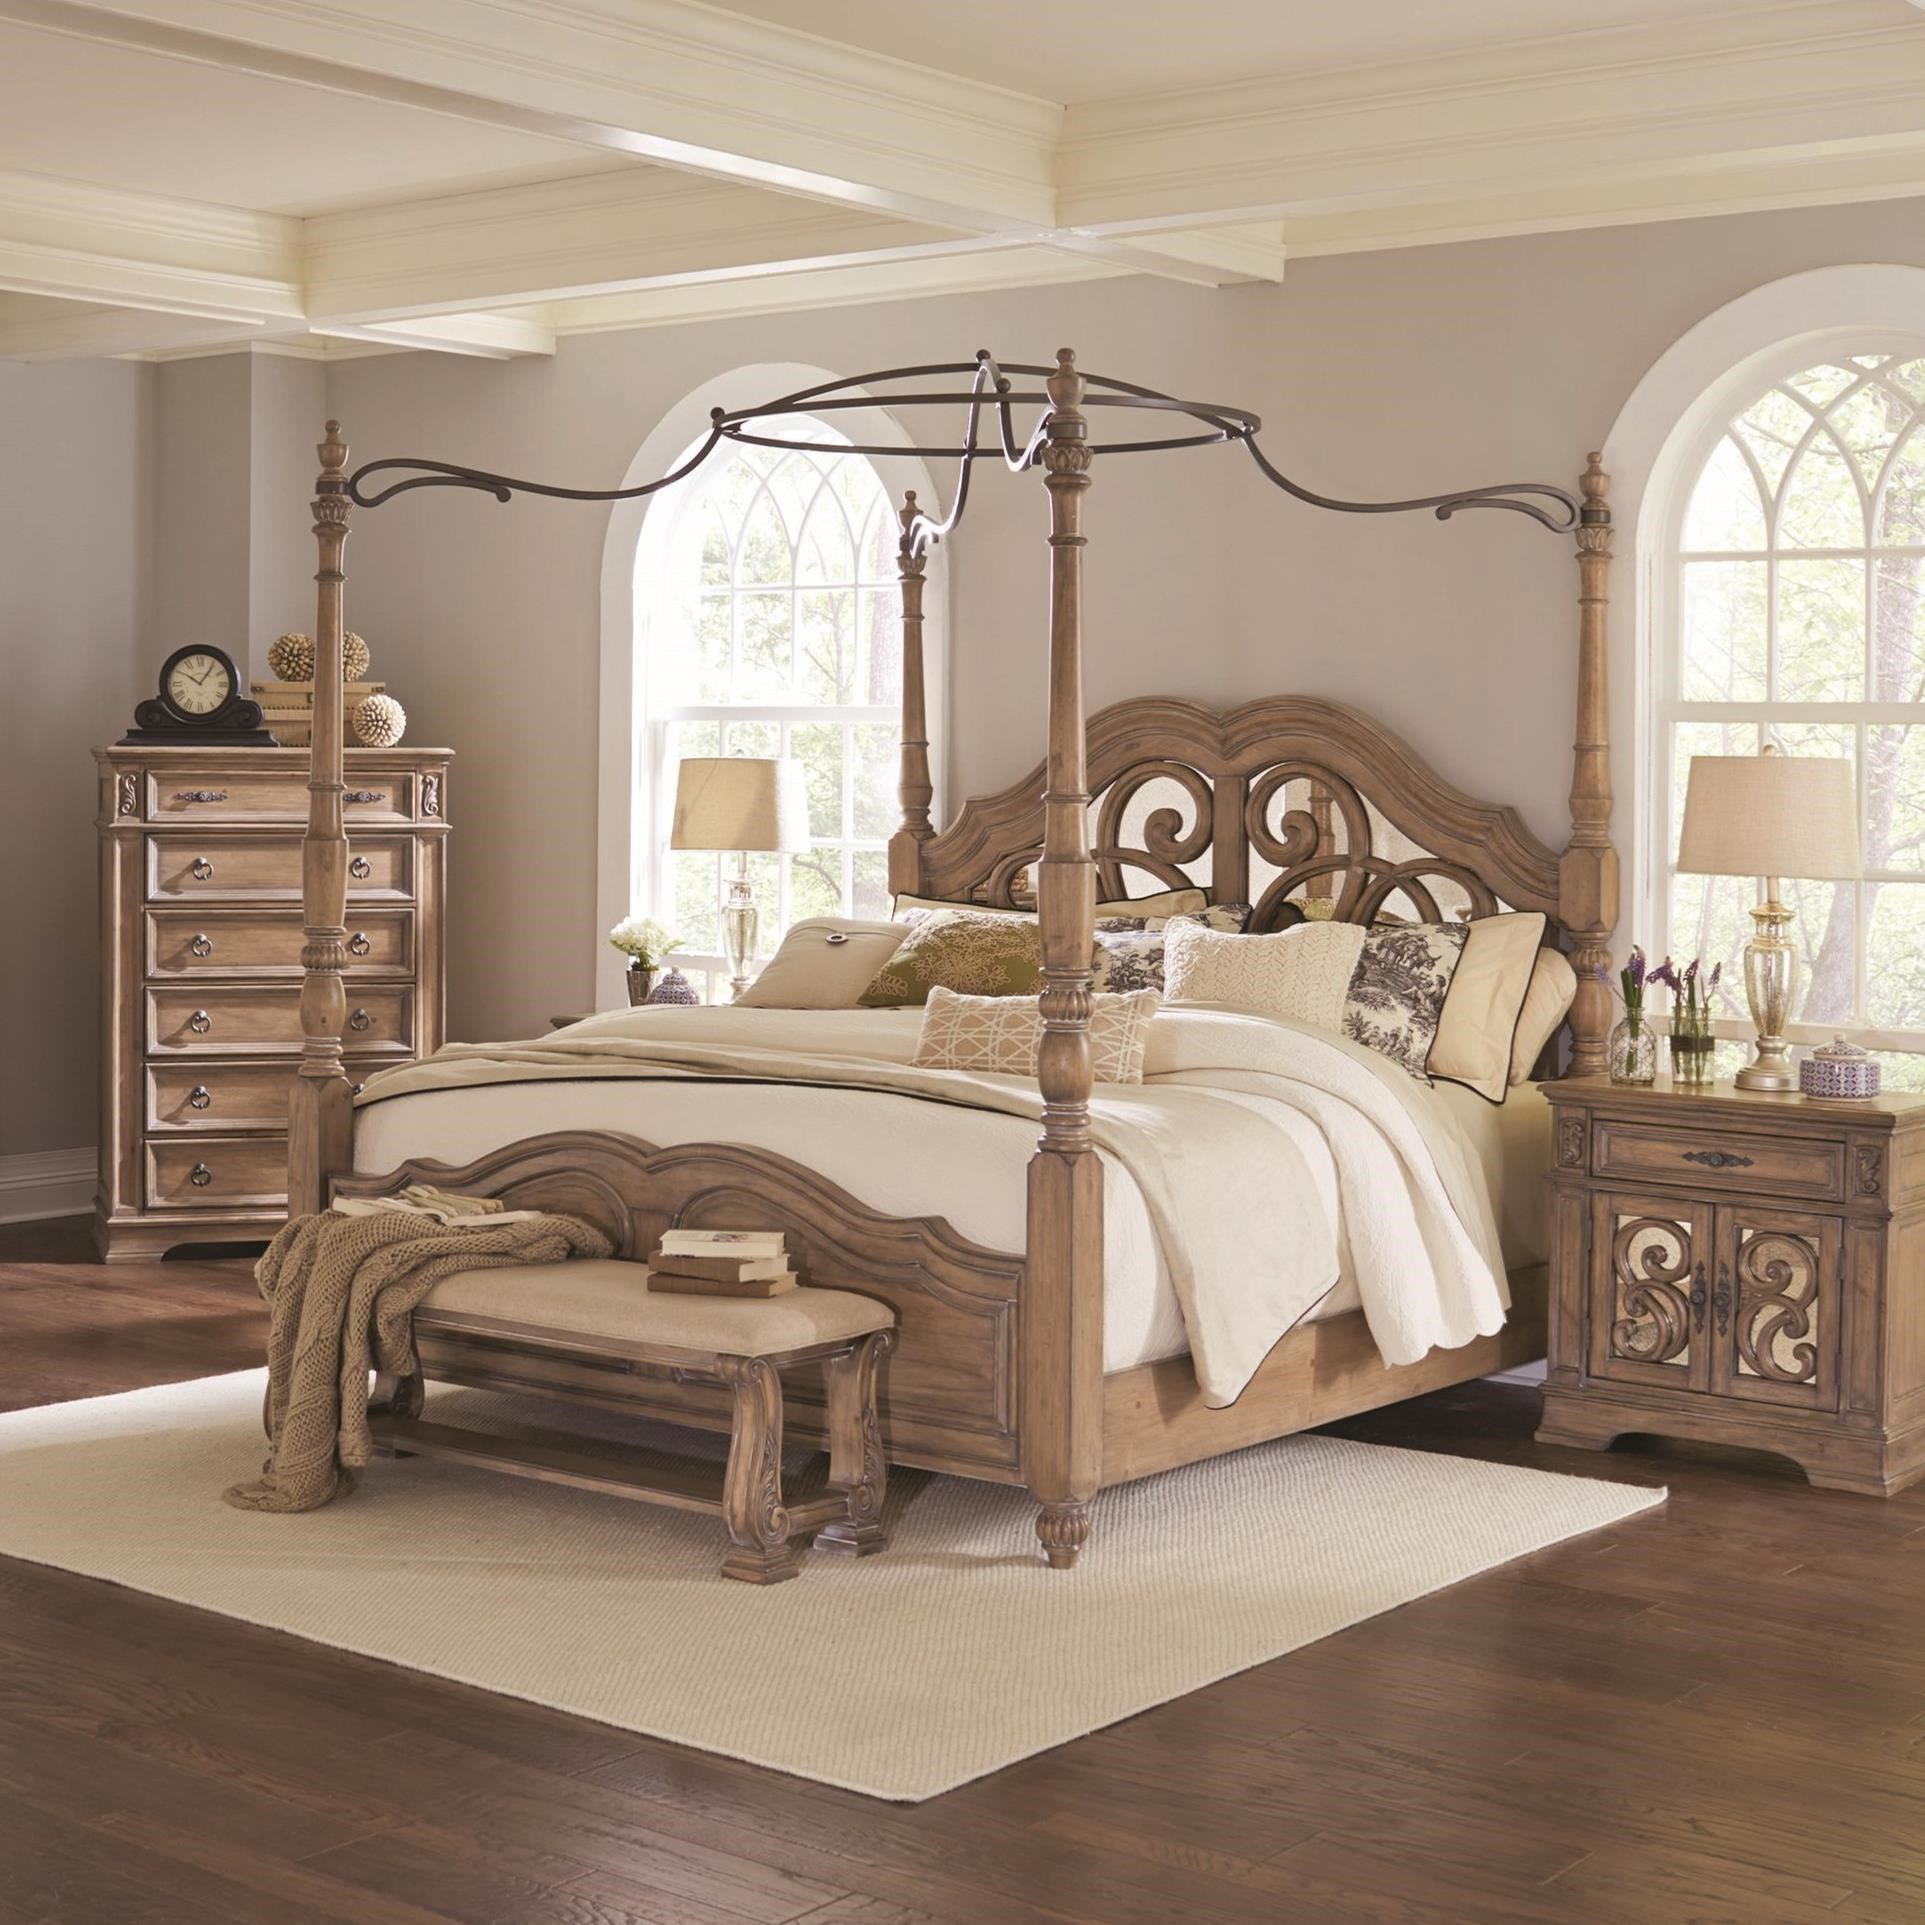 Ilana California King Canopy Bed With Mirror Back Headboard Quality Furniture At Affordable Prices In Philadelphia Main Line Pa